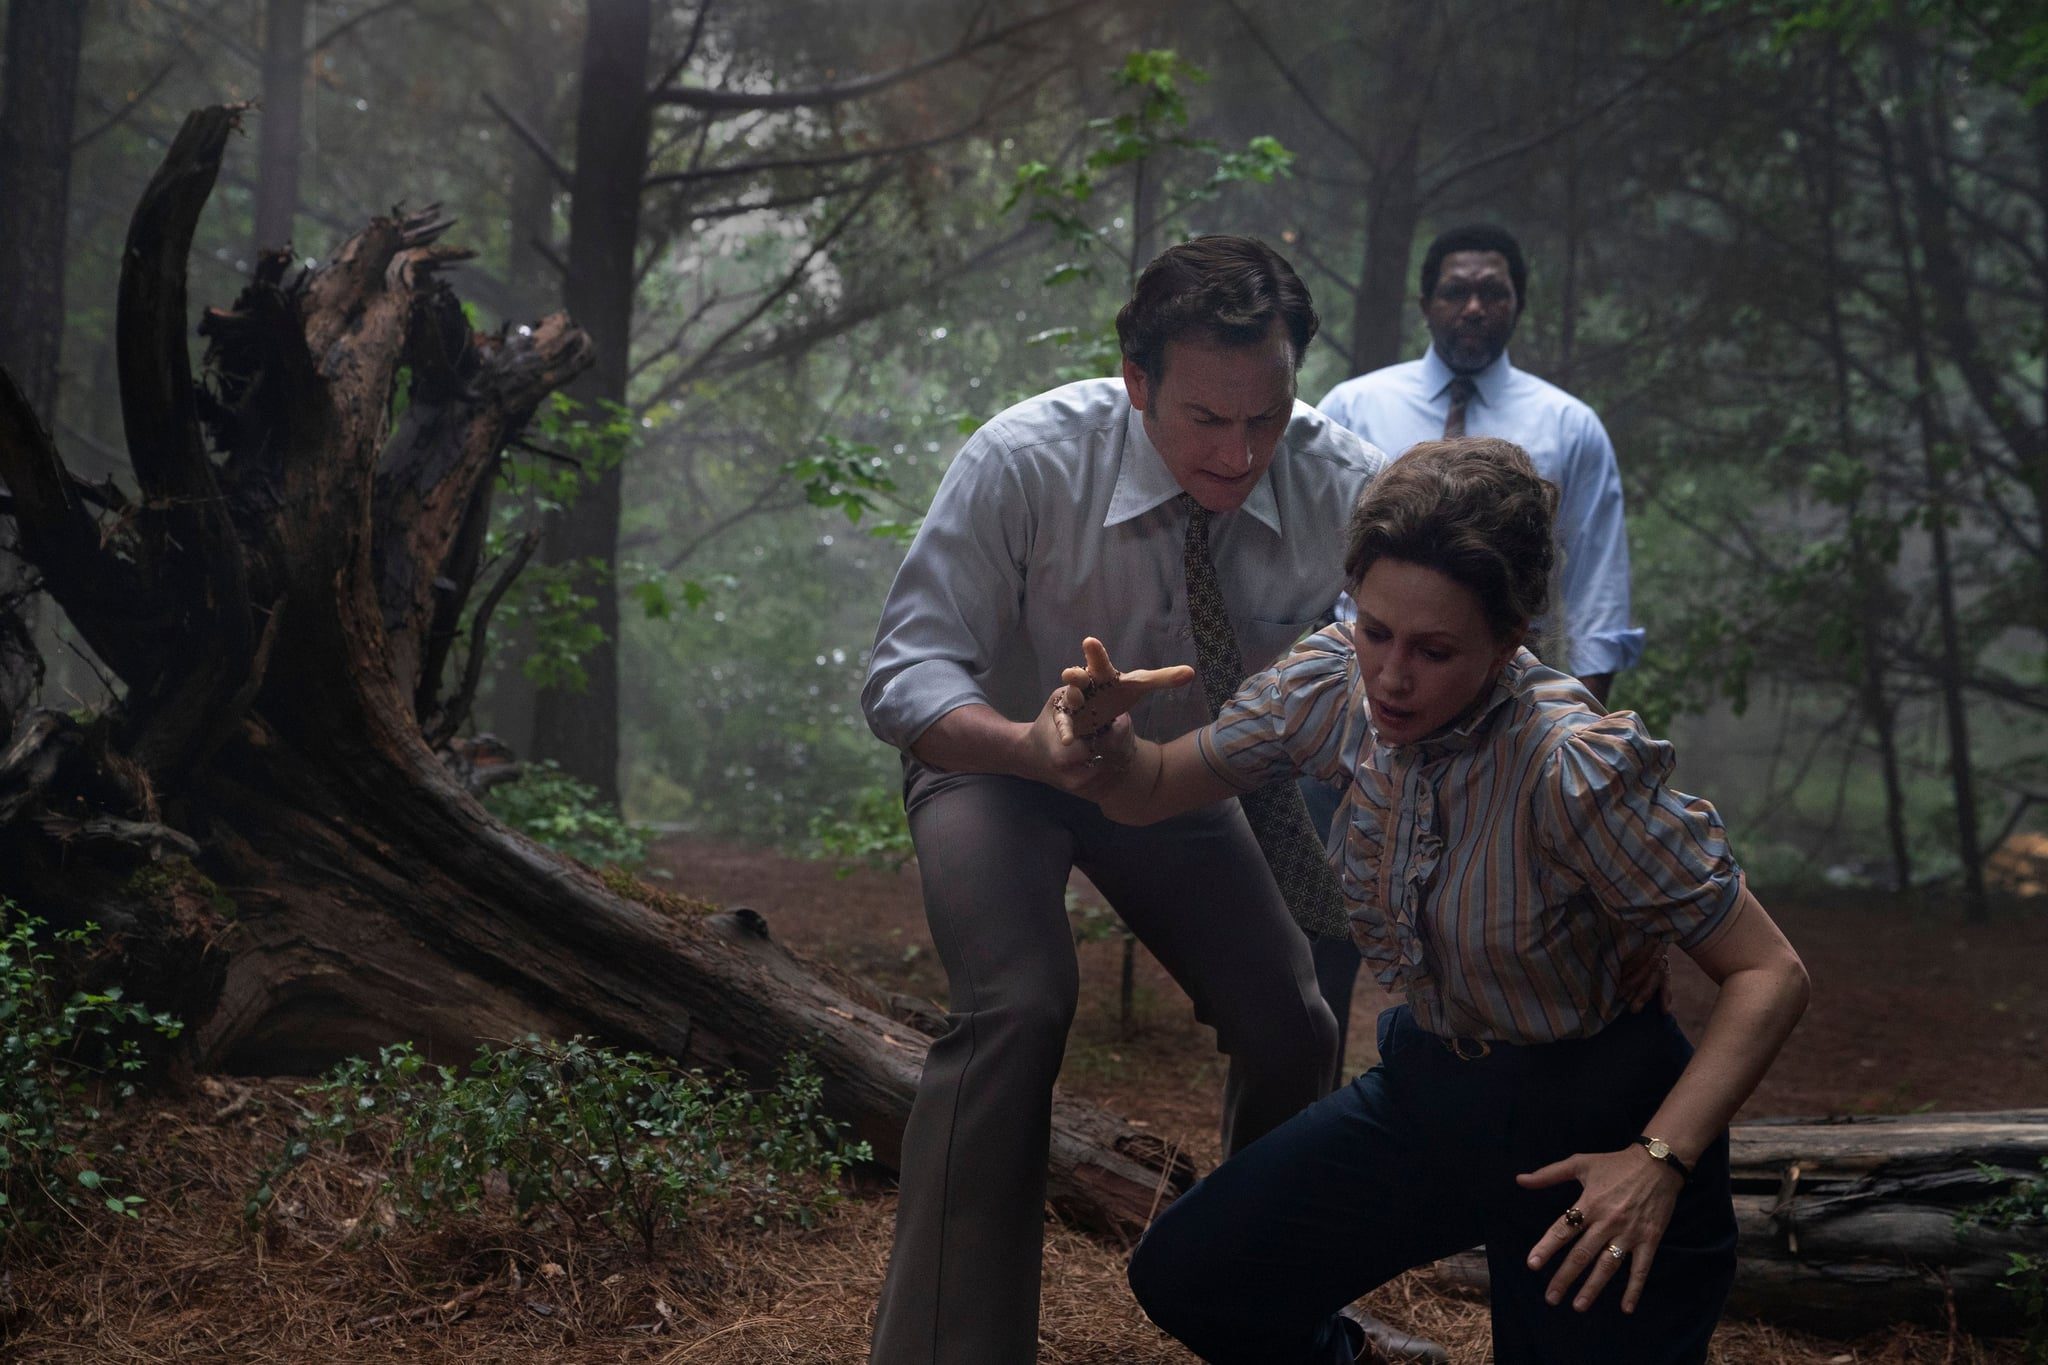 THE CONJURING: THE DEVIL MADE ME DO IT, foreground from left: Patrick Wilson, Vera Farmiga; background: Keith Arthur Bolden, 2021. ph: Ben Rothstein /  Warner Bros. / Courtesy Everett Collection